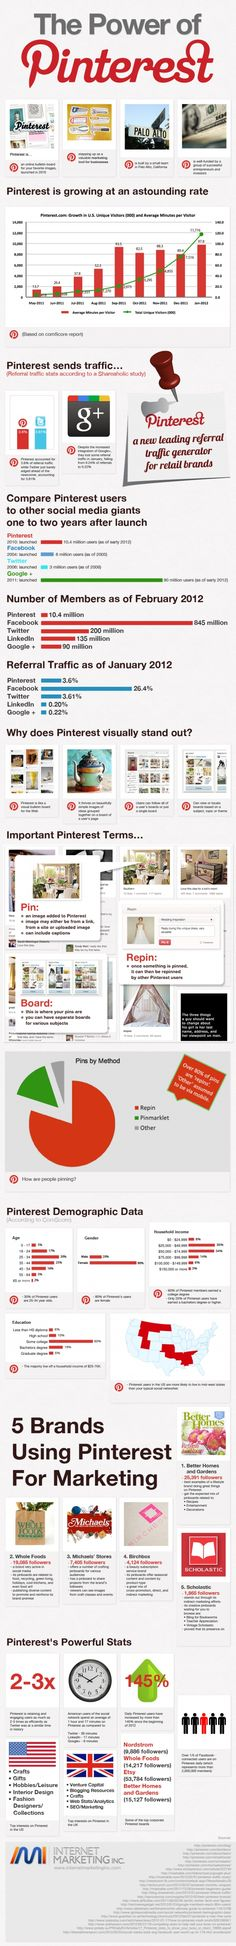 The Power of Pinterest!  #pinterest